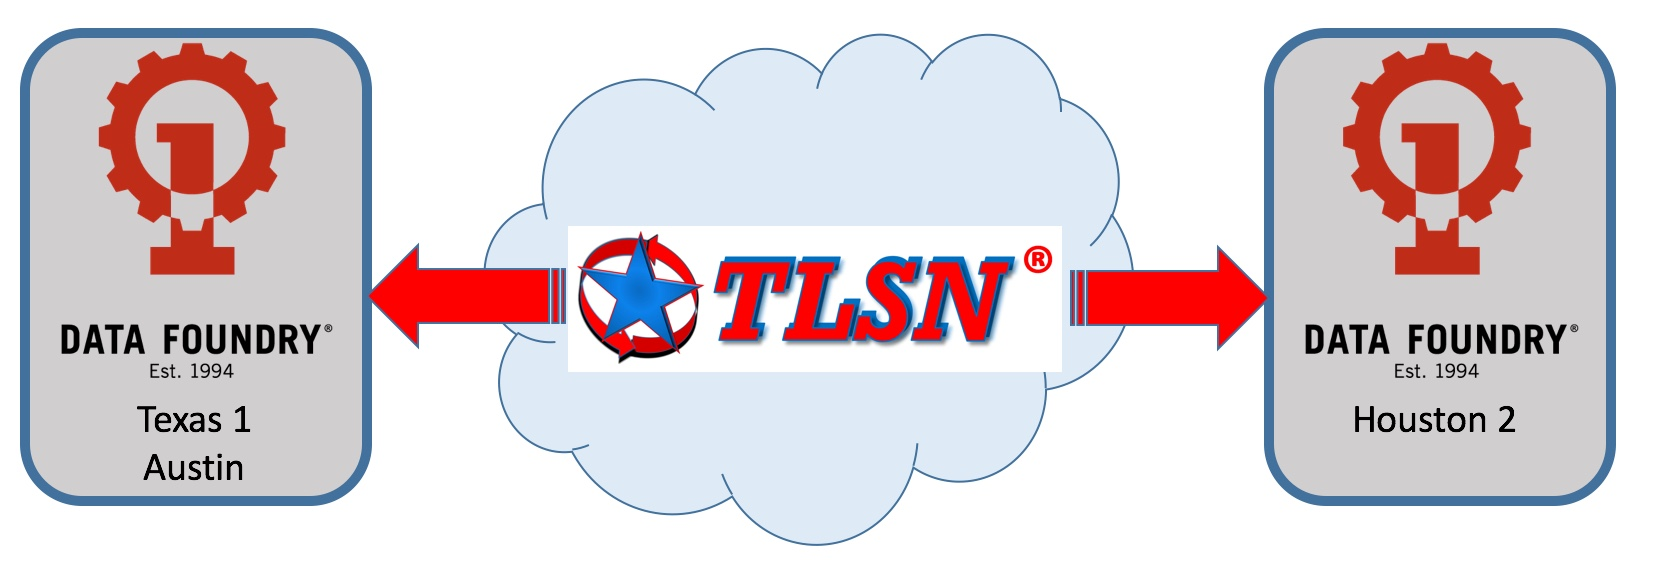 TLSN Expands into Data Foundry's New Houston 2 Data Center